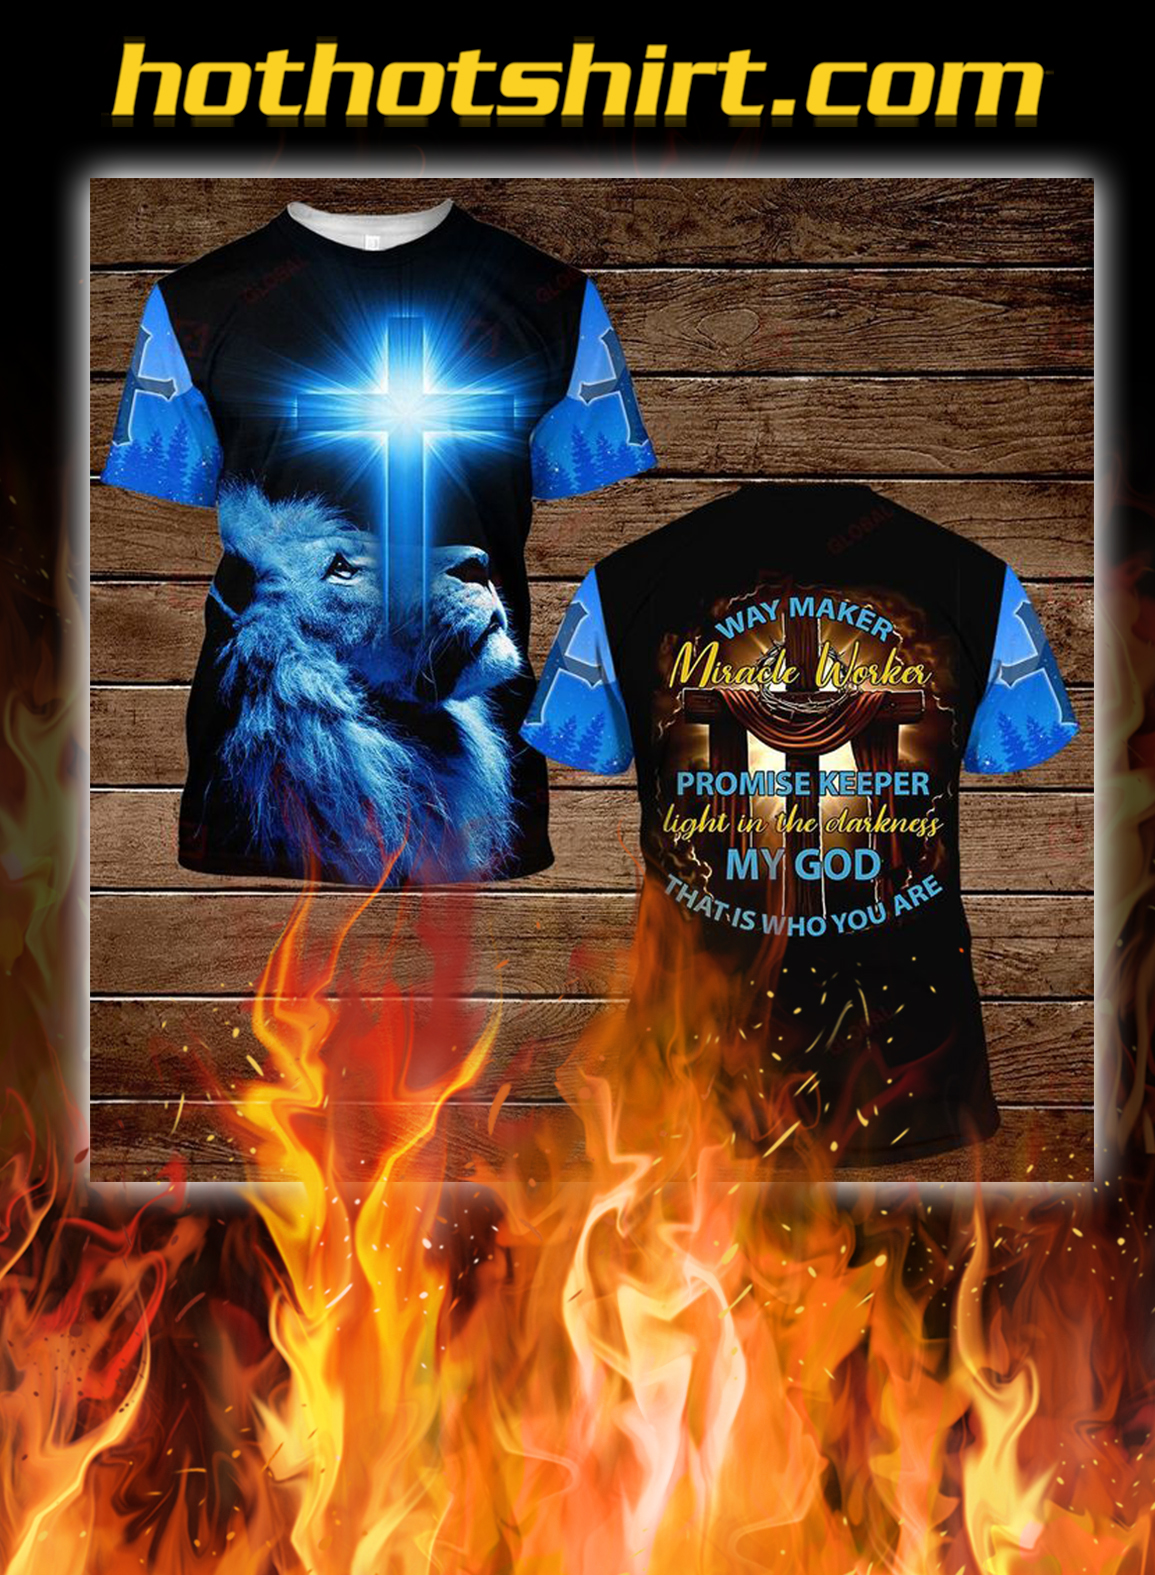 Way maker miracle worker promise keeper light in the darkness my god 3d all over printed shirt